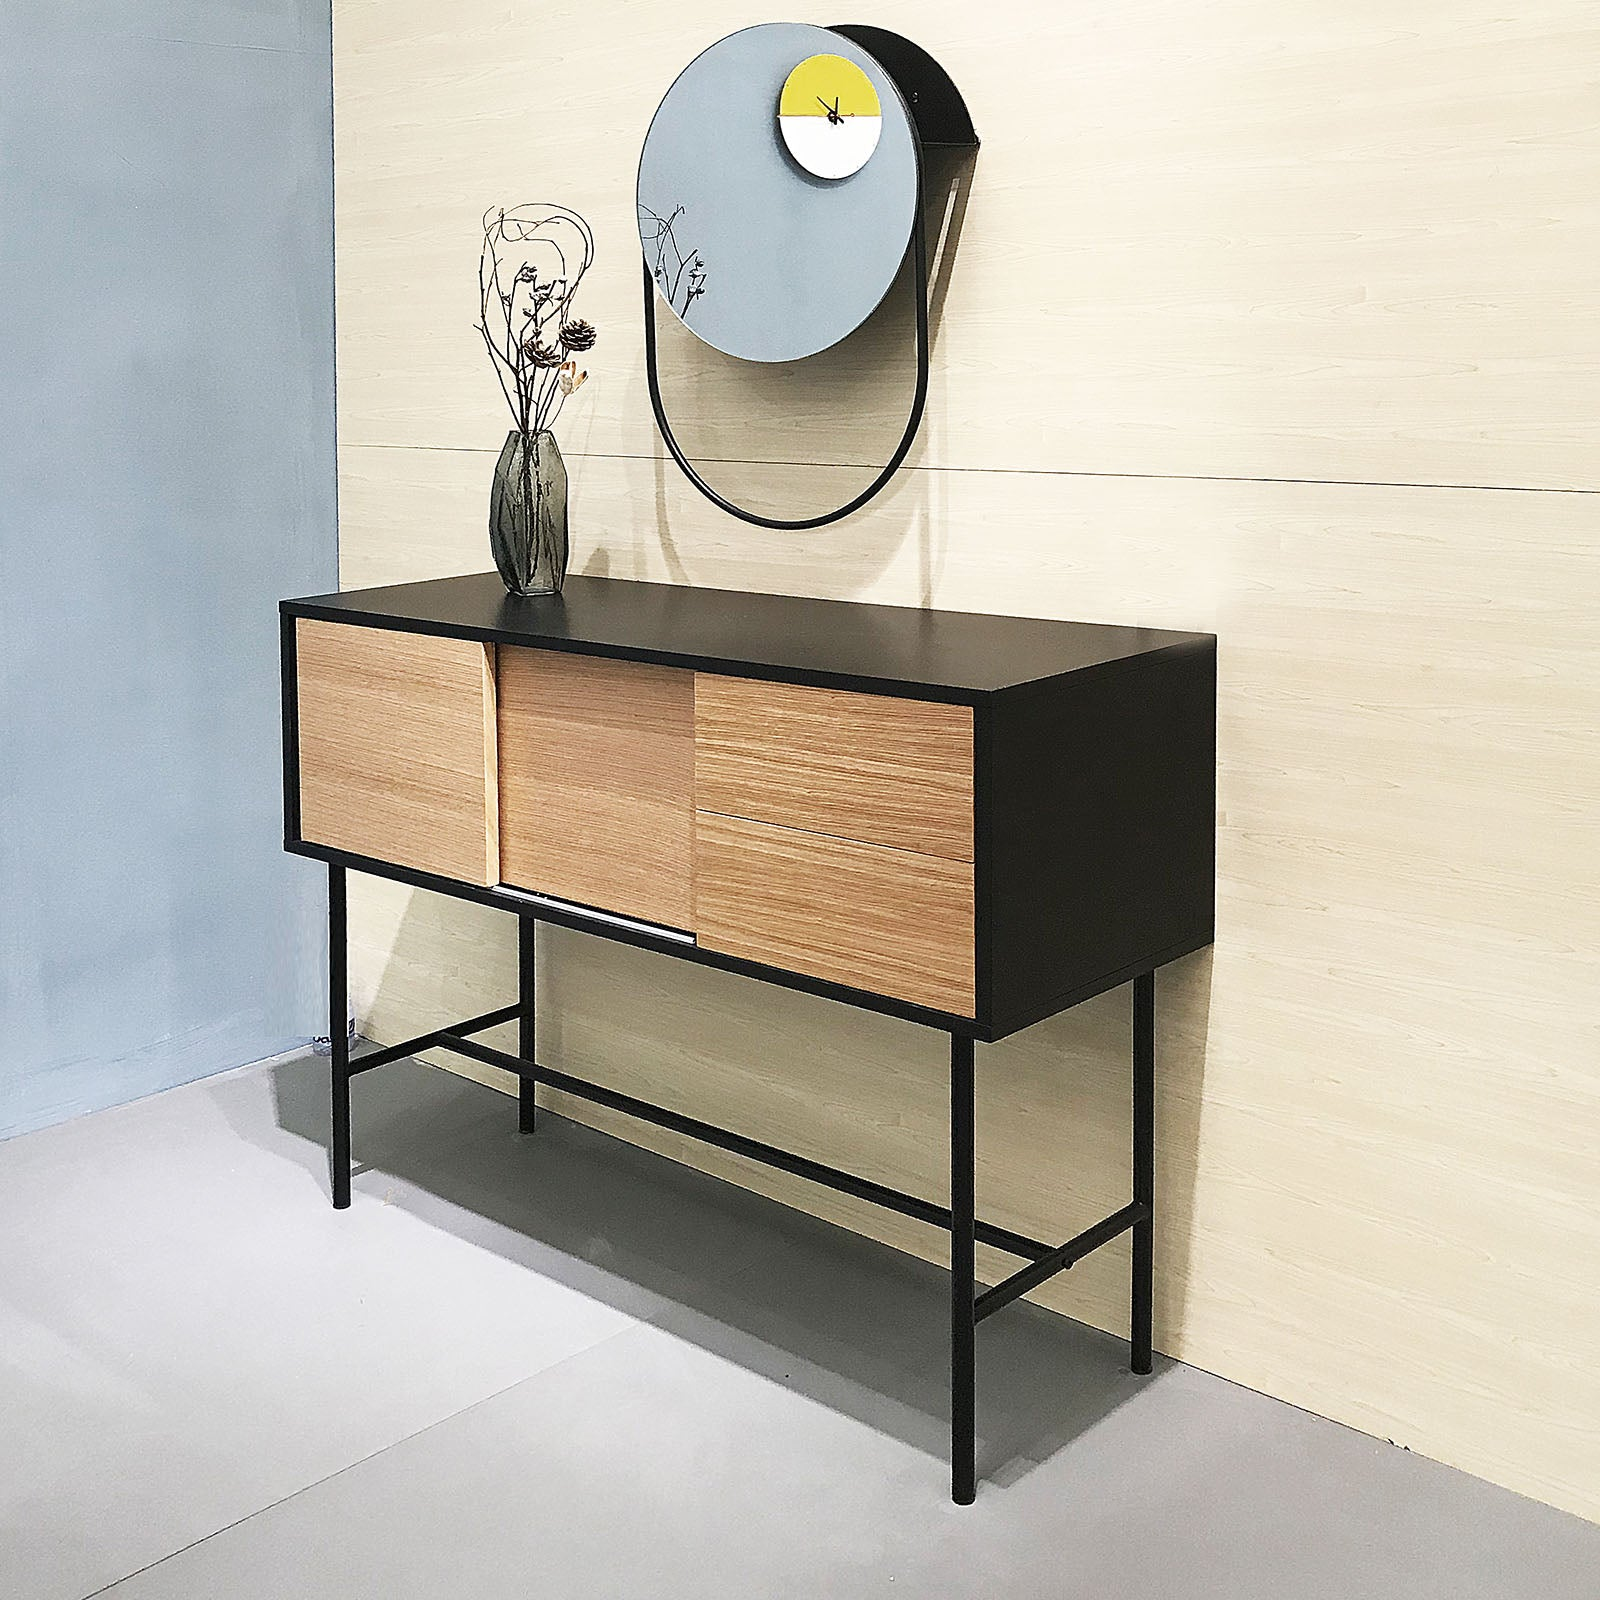 Lugo  Side board / console  LL-112 -  لوحة جانبية / وحدة تحكم لوغو - Shop Online Furniture and Home Decor Store in Dubai, UAE at ebarza